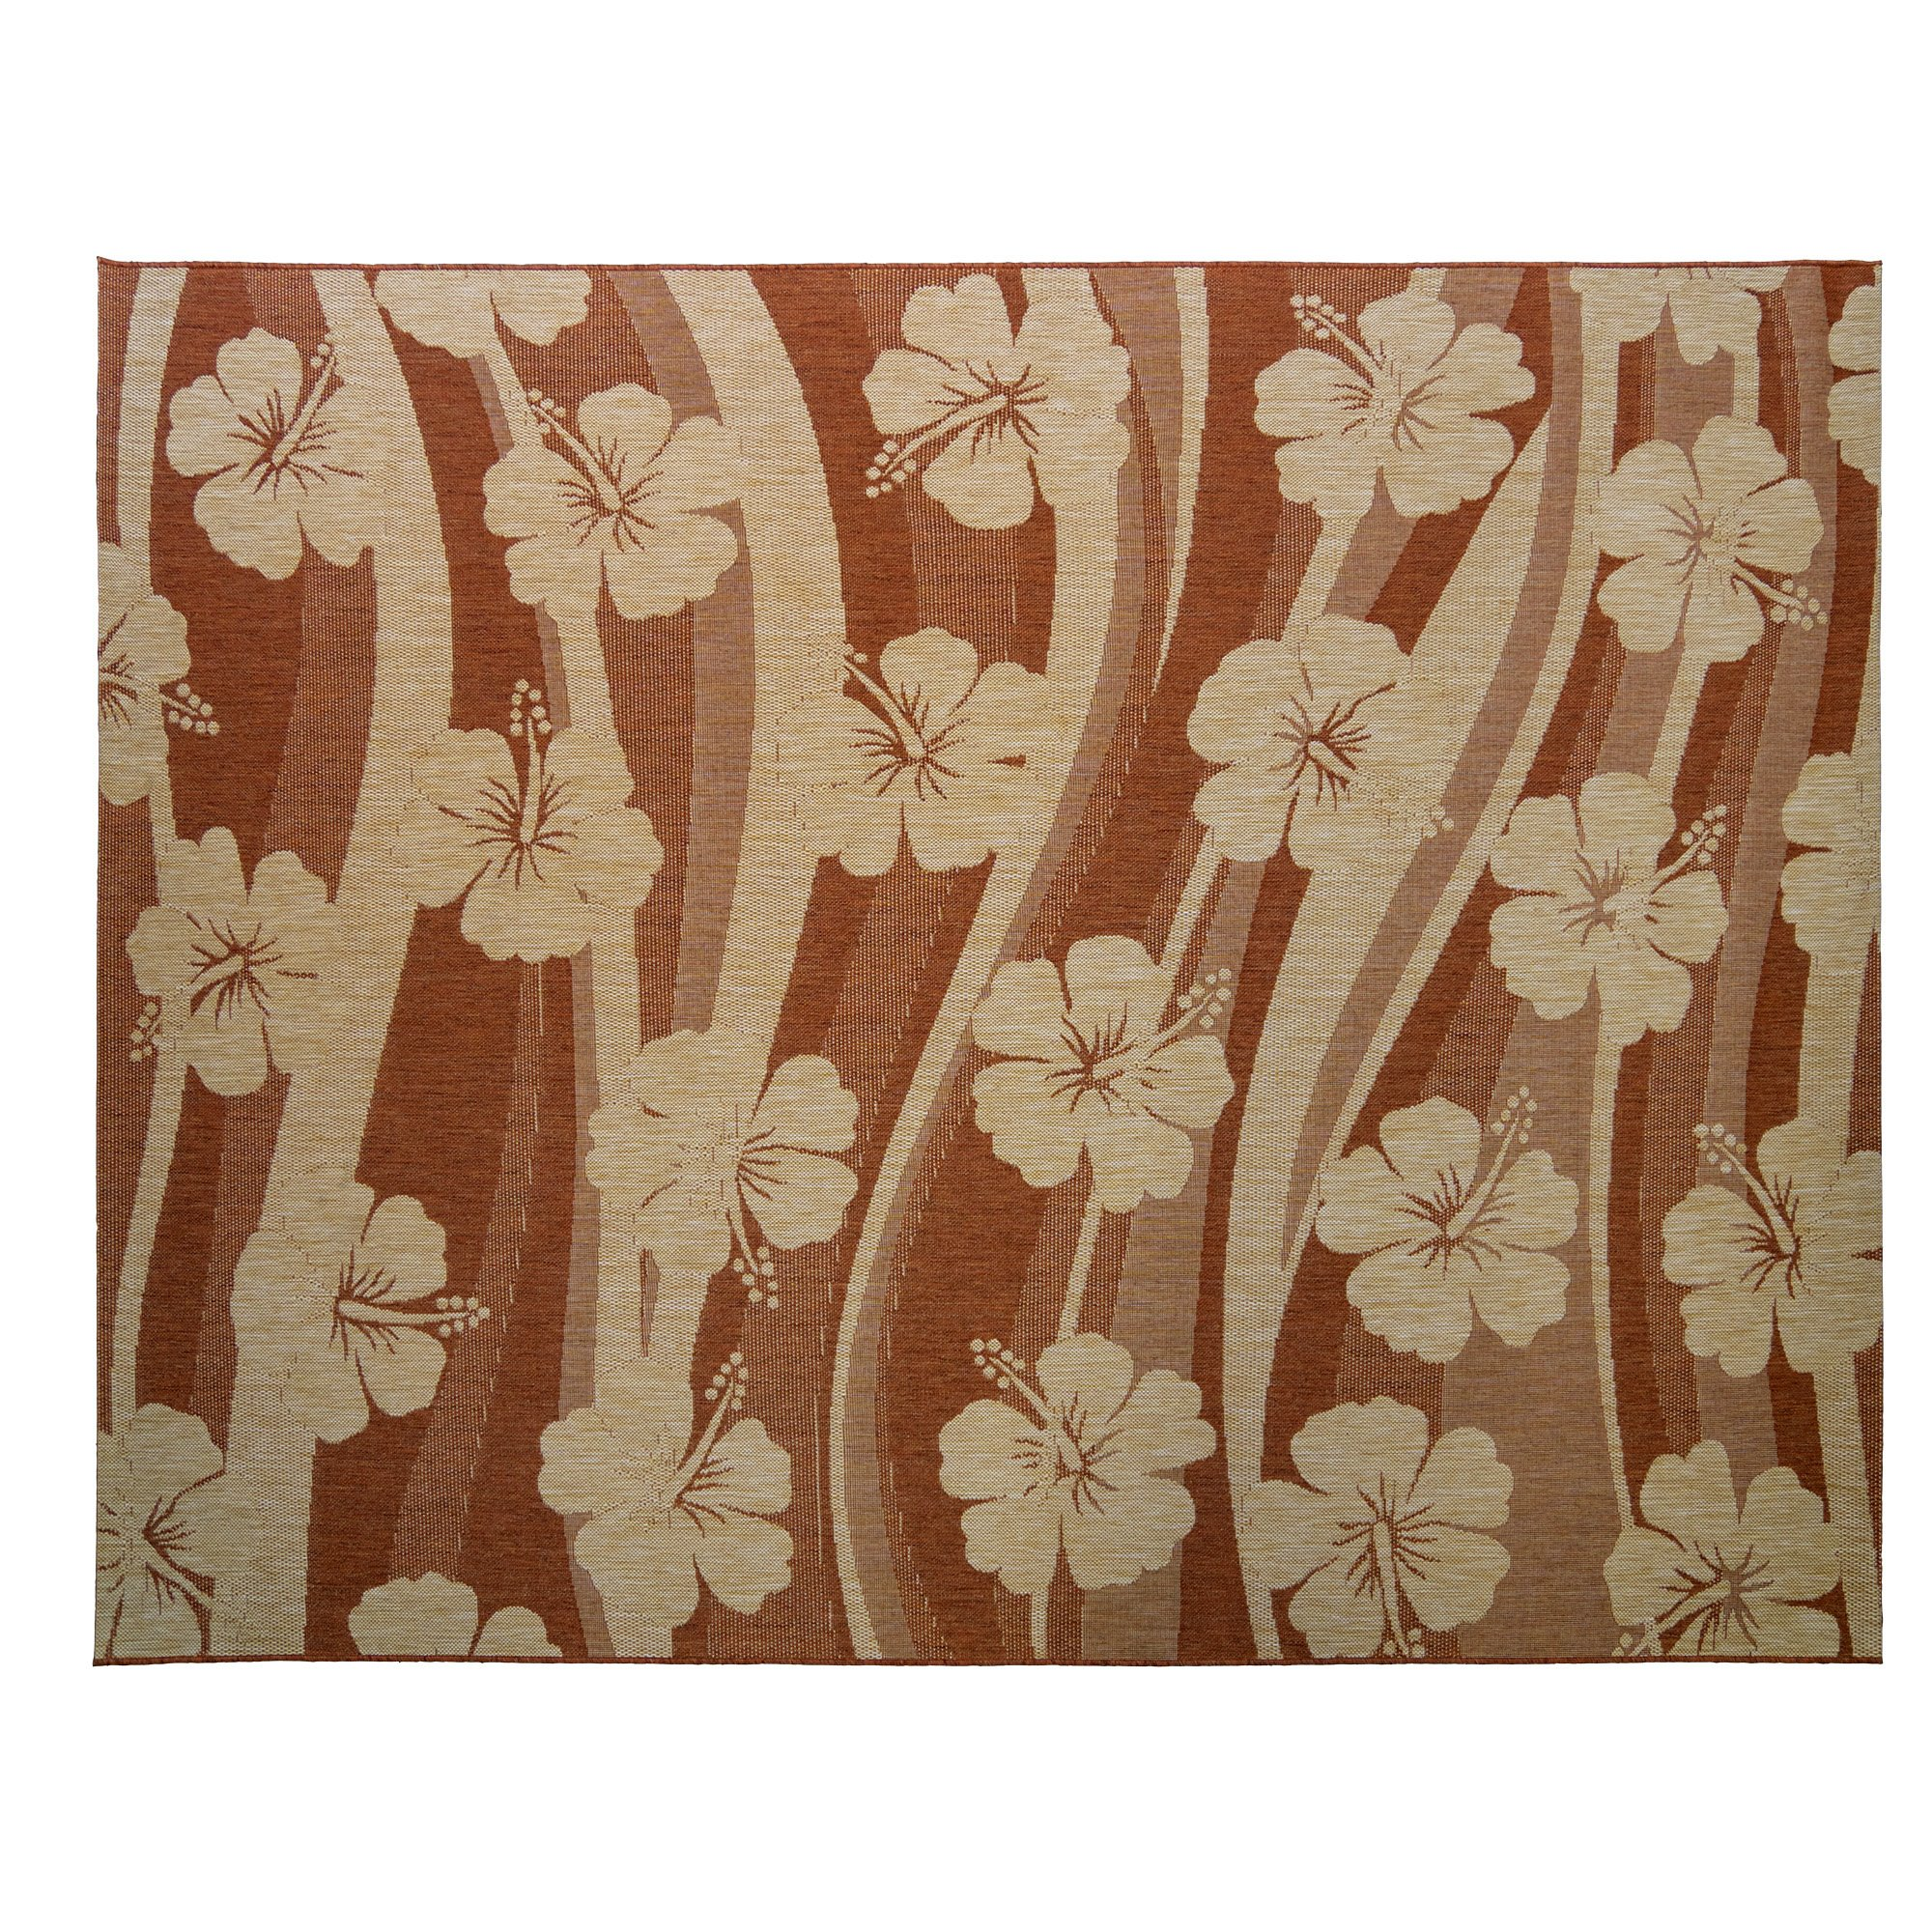 Gertmenian Coastal Beachfront Rug Collection Hibiscus 3-D Outdoor Rugs 8x10, Large, Light Brown